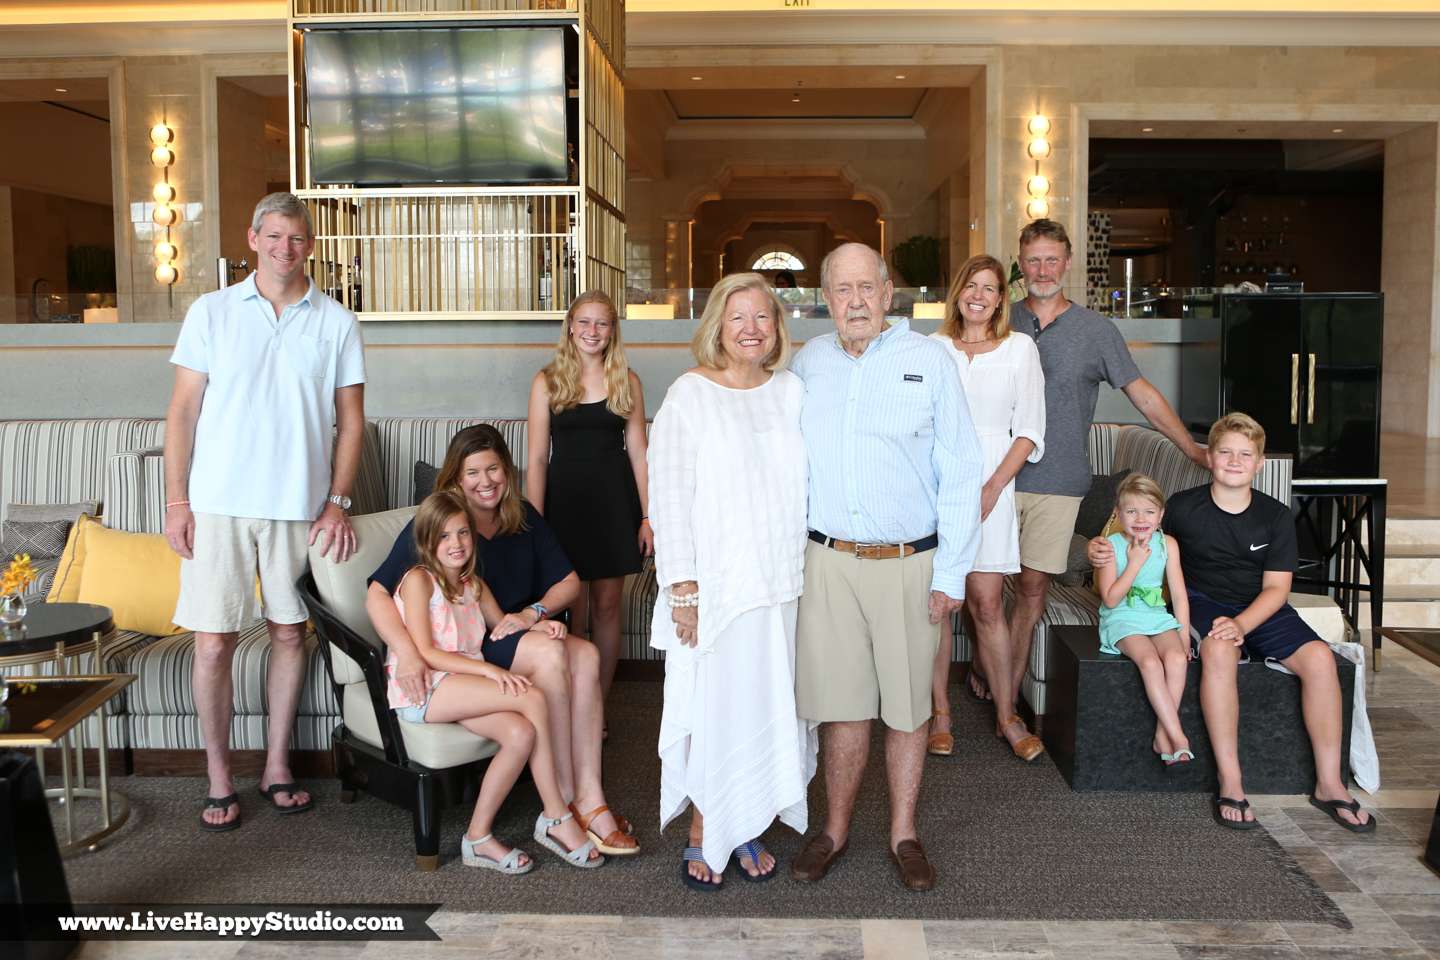 Roy-family-photography-orlando-ritz-grand-lakes-www.livehappystudio.com-19.jpg